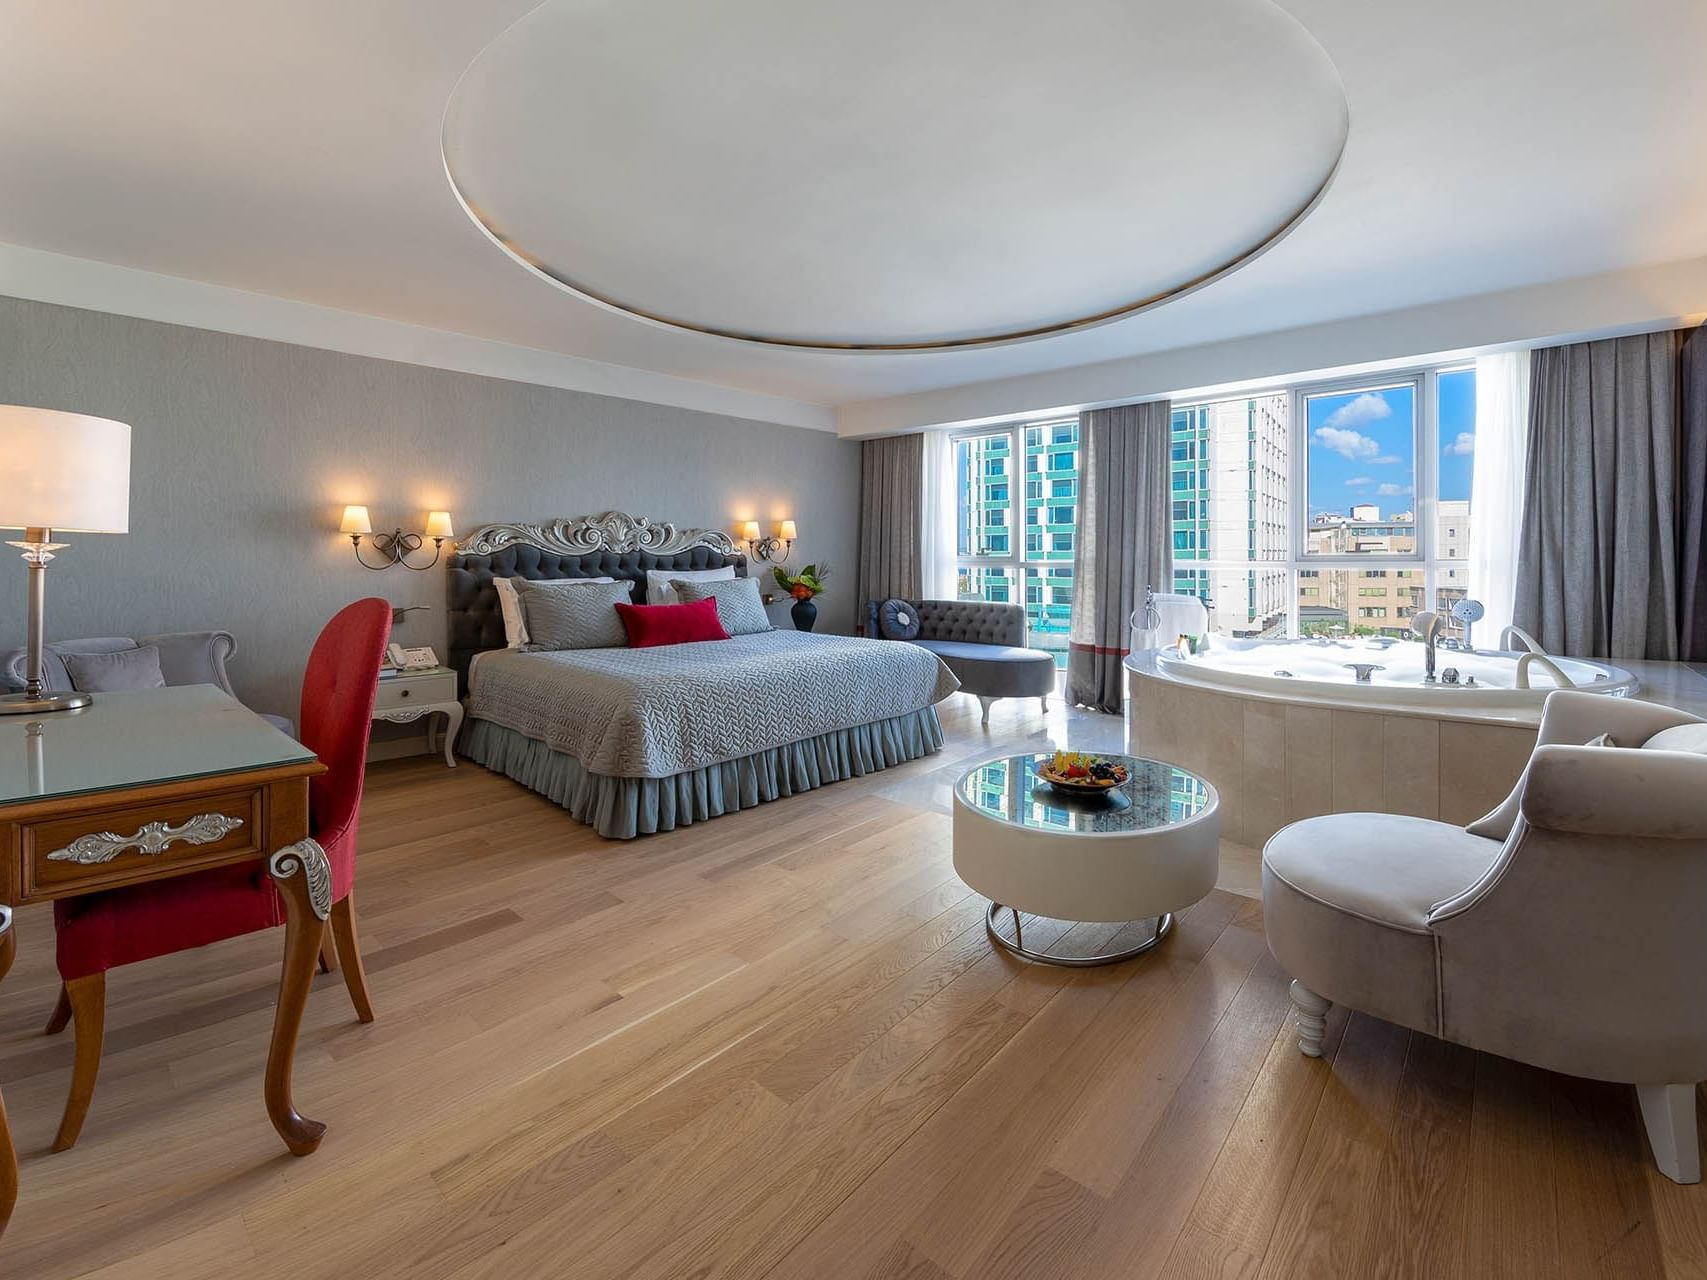 Luxury Suite with one bed at CVK Taksim Hotel Istanbul